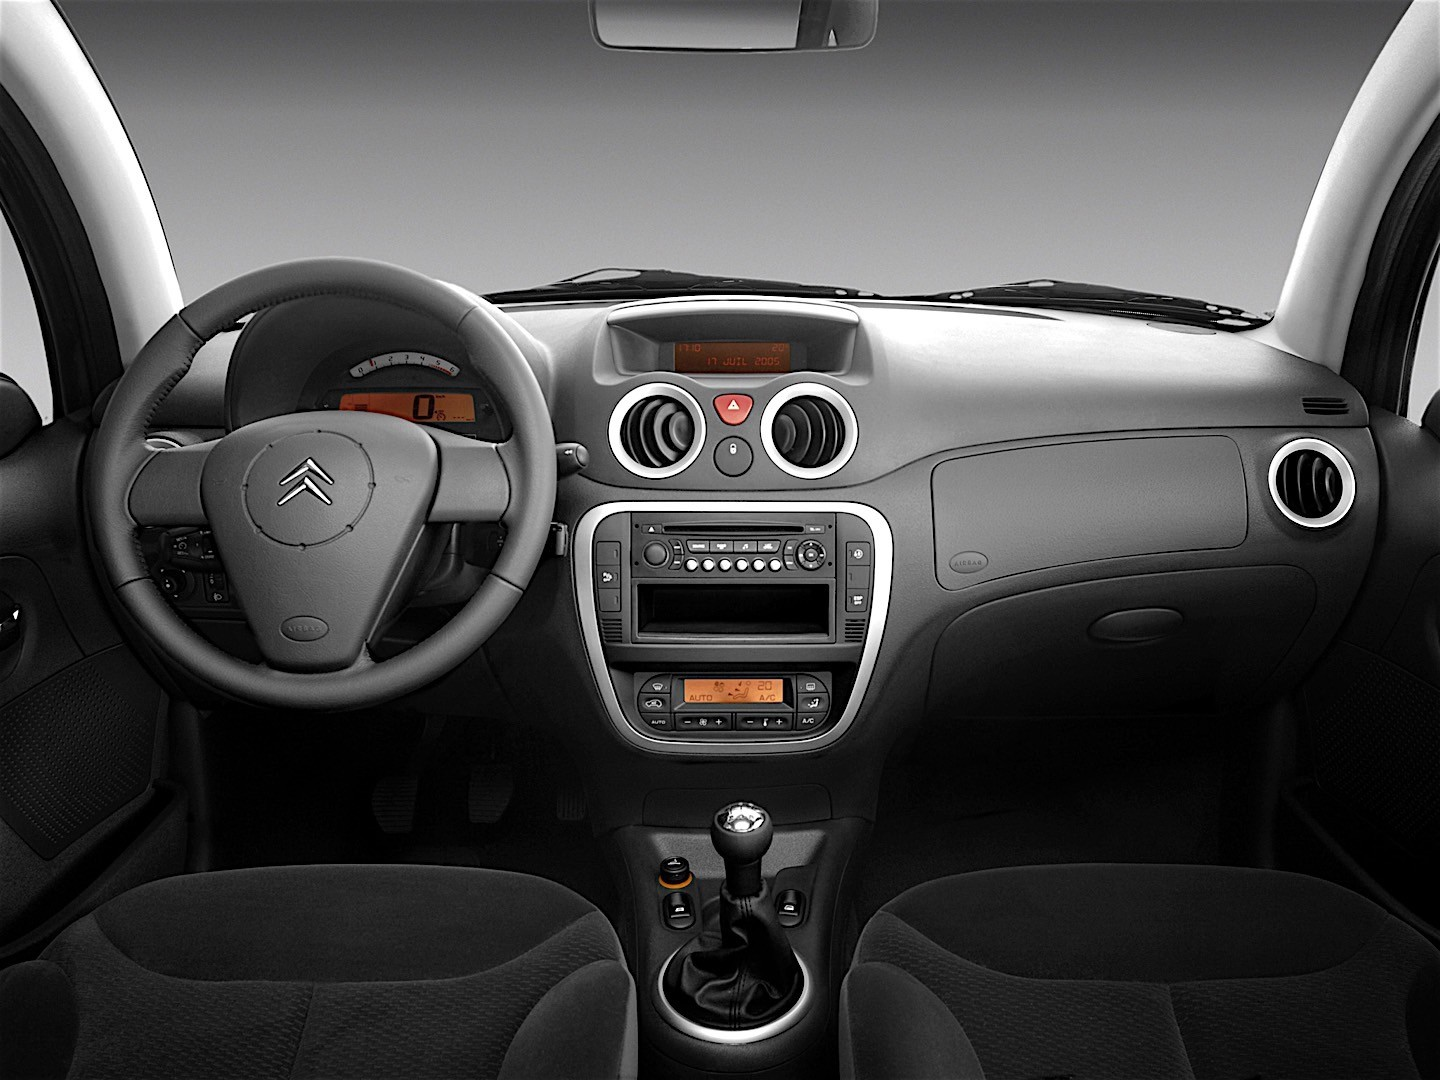 citroen c3 specs photos 2005 2006 2007 2008 2009 autoevolution. Black Bedroom Furniture Sets. Home Design Ideas